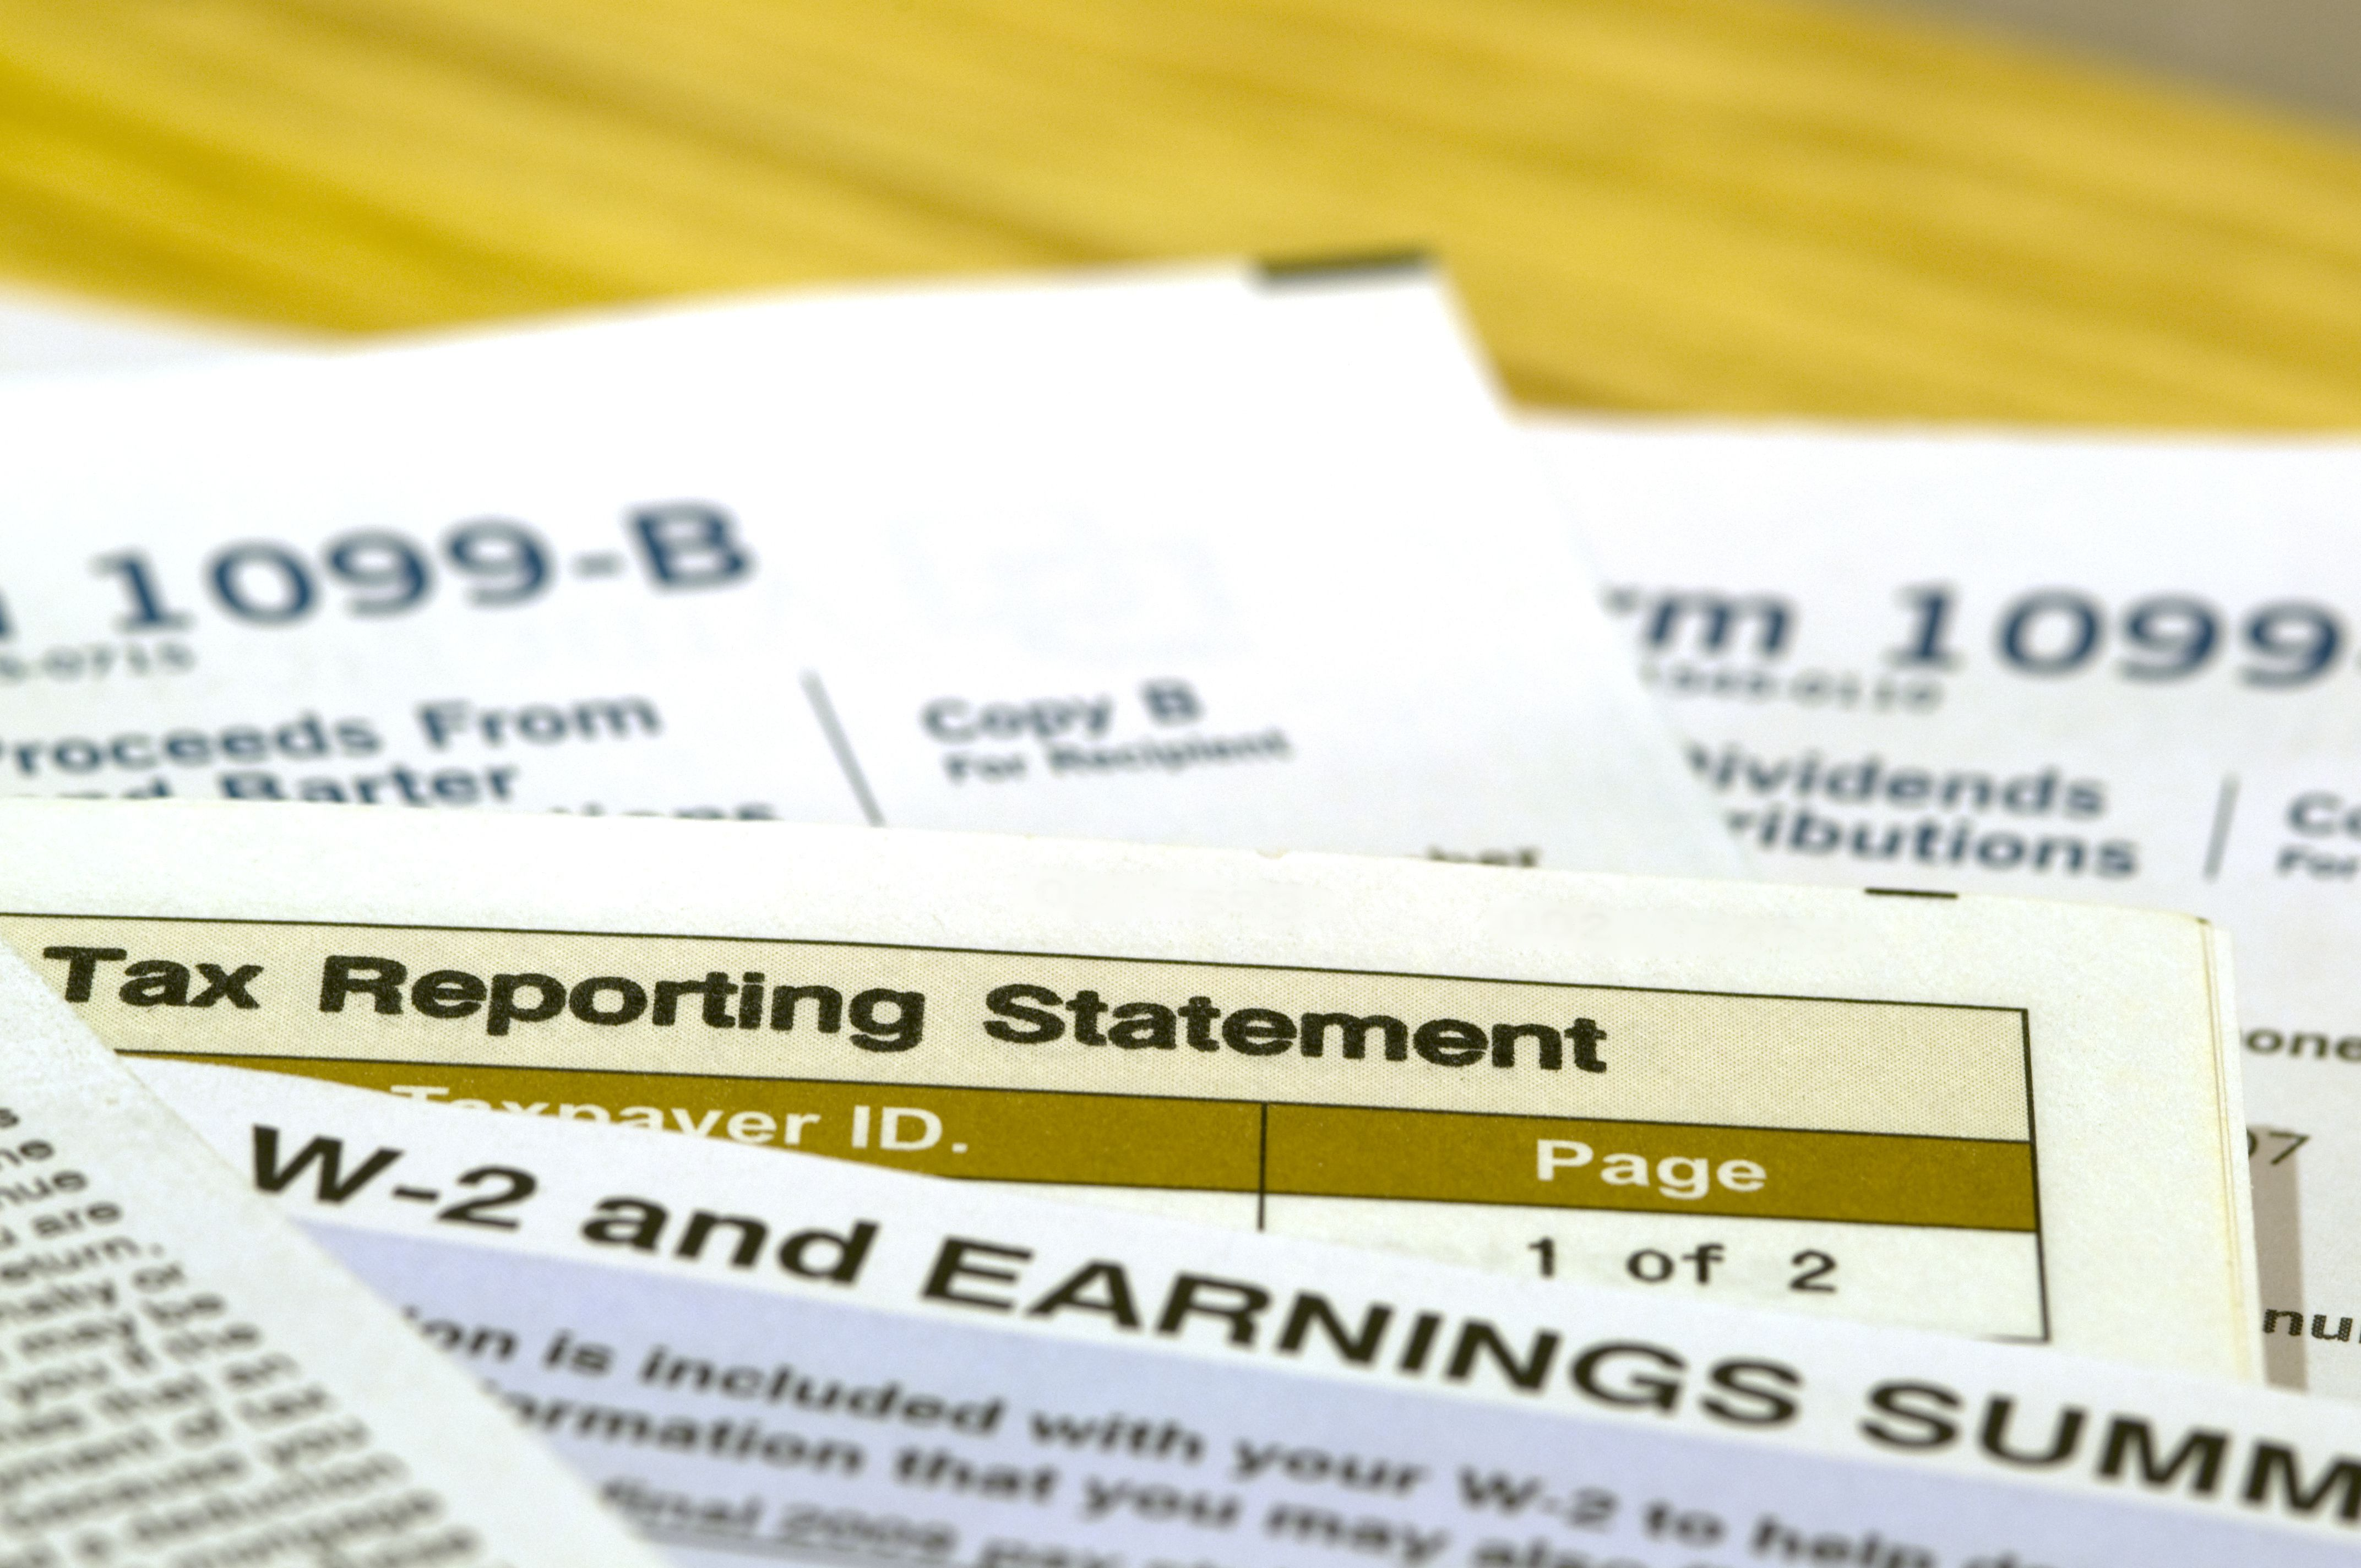 The Irs Has Announced That Tax Season For Filing 2018 Returns Will